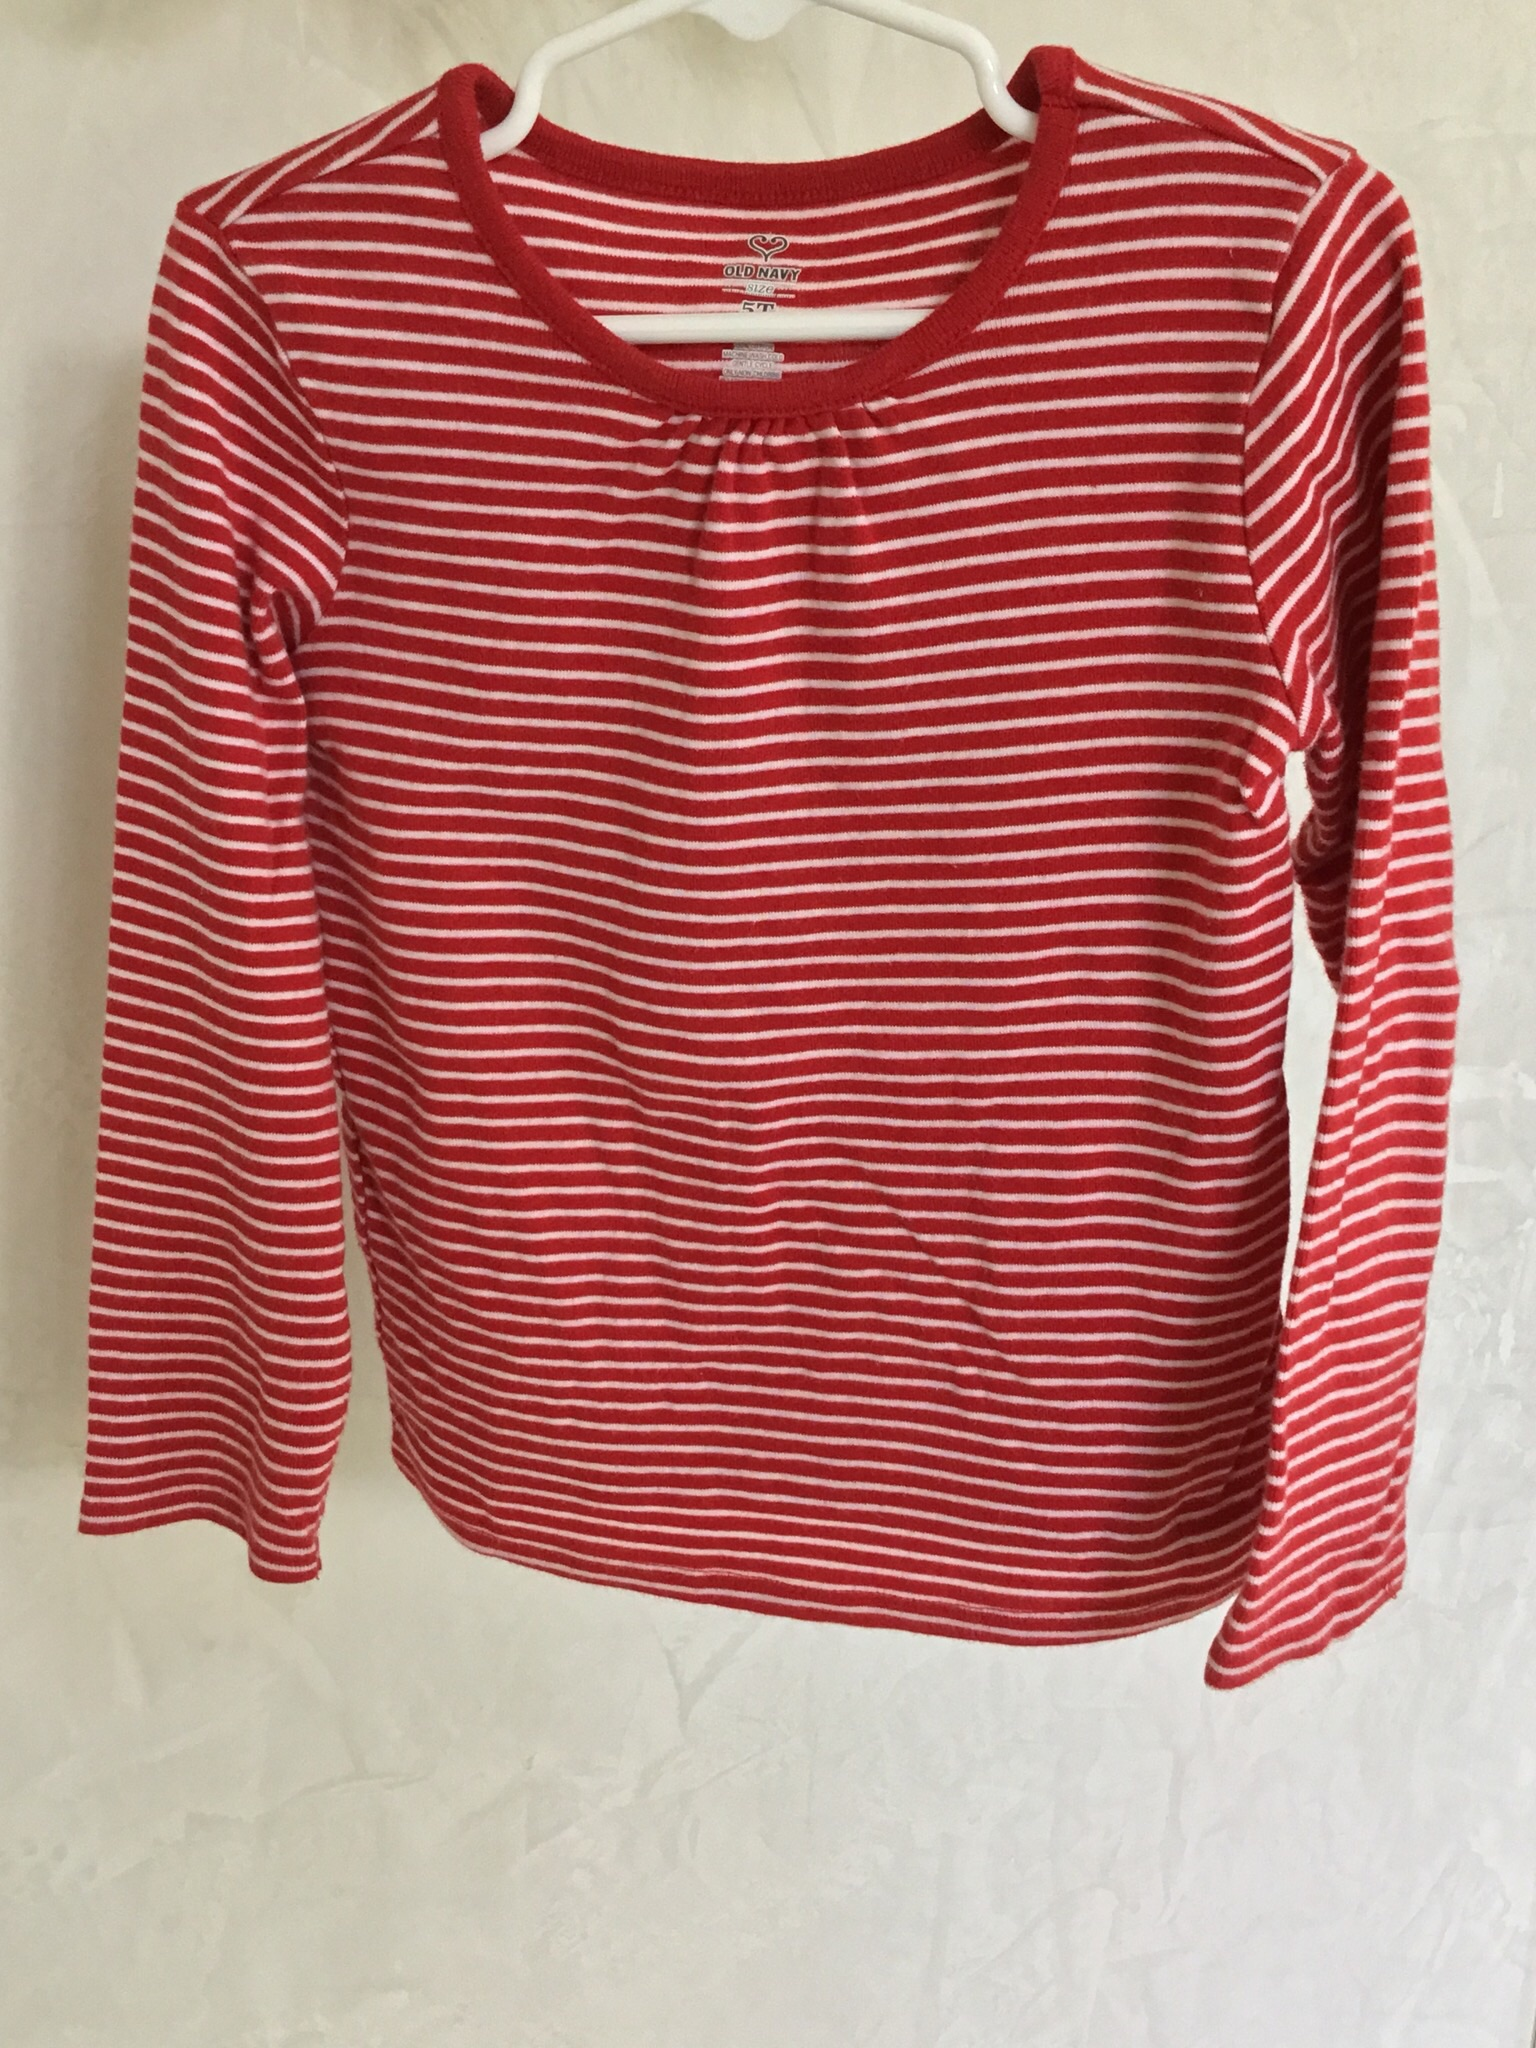 Old navy red and white striped long sleeve t shirt size 5t Striped long sleeve t shirt